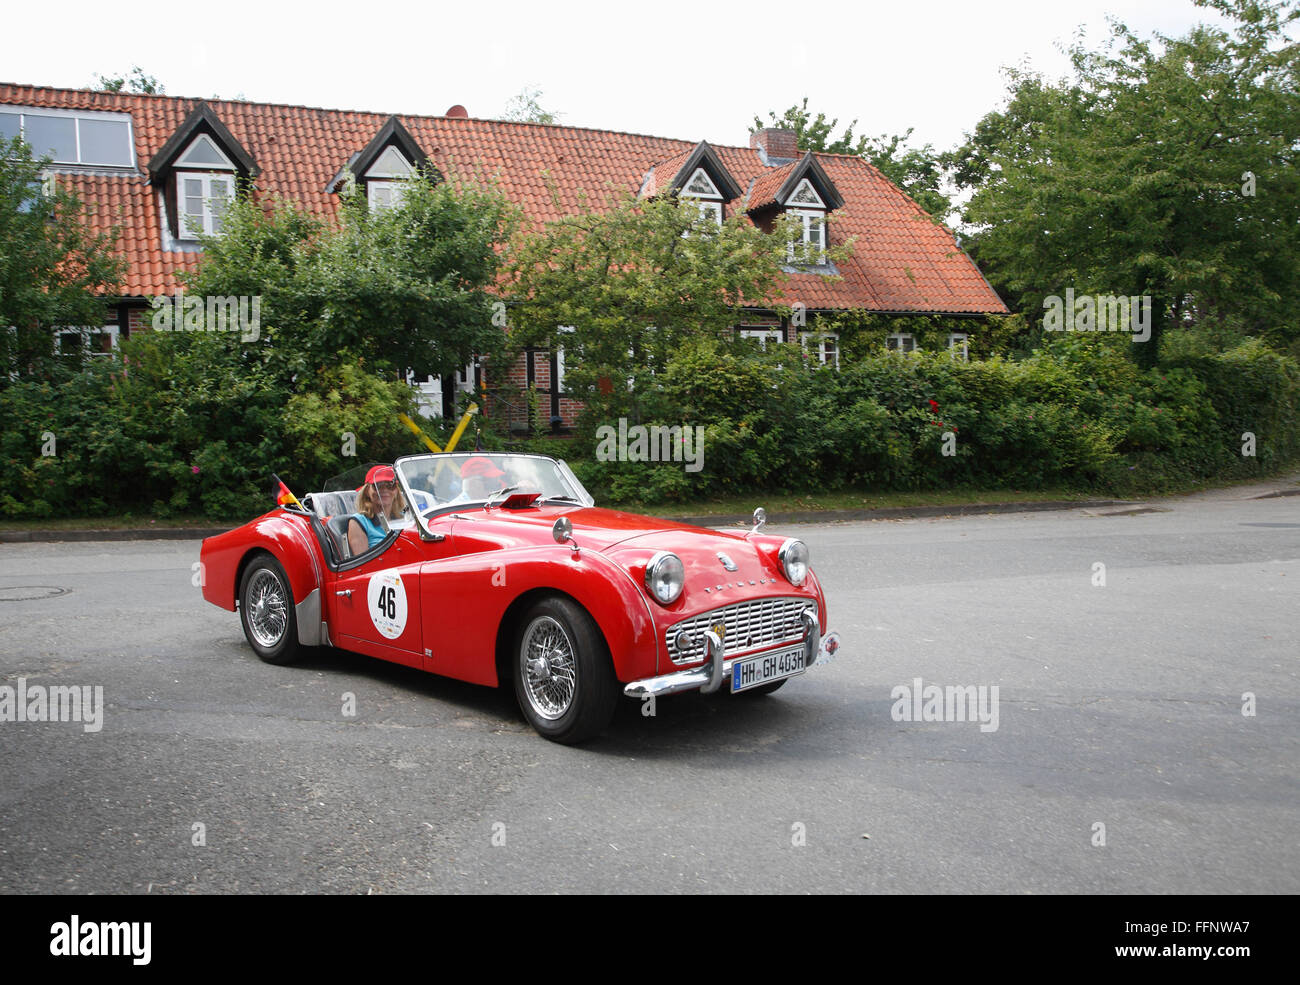 Oldtimer-Rallye, Landkreis Lueneburg, Lower Saxony, Germany, Europe Stock Photo